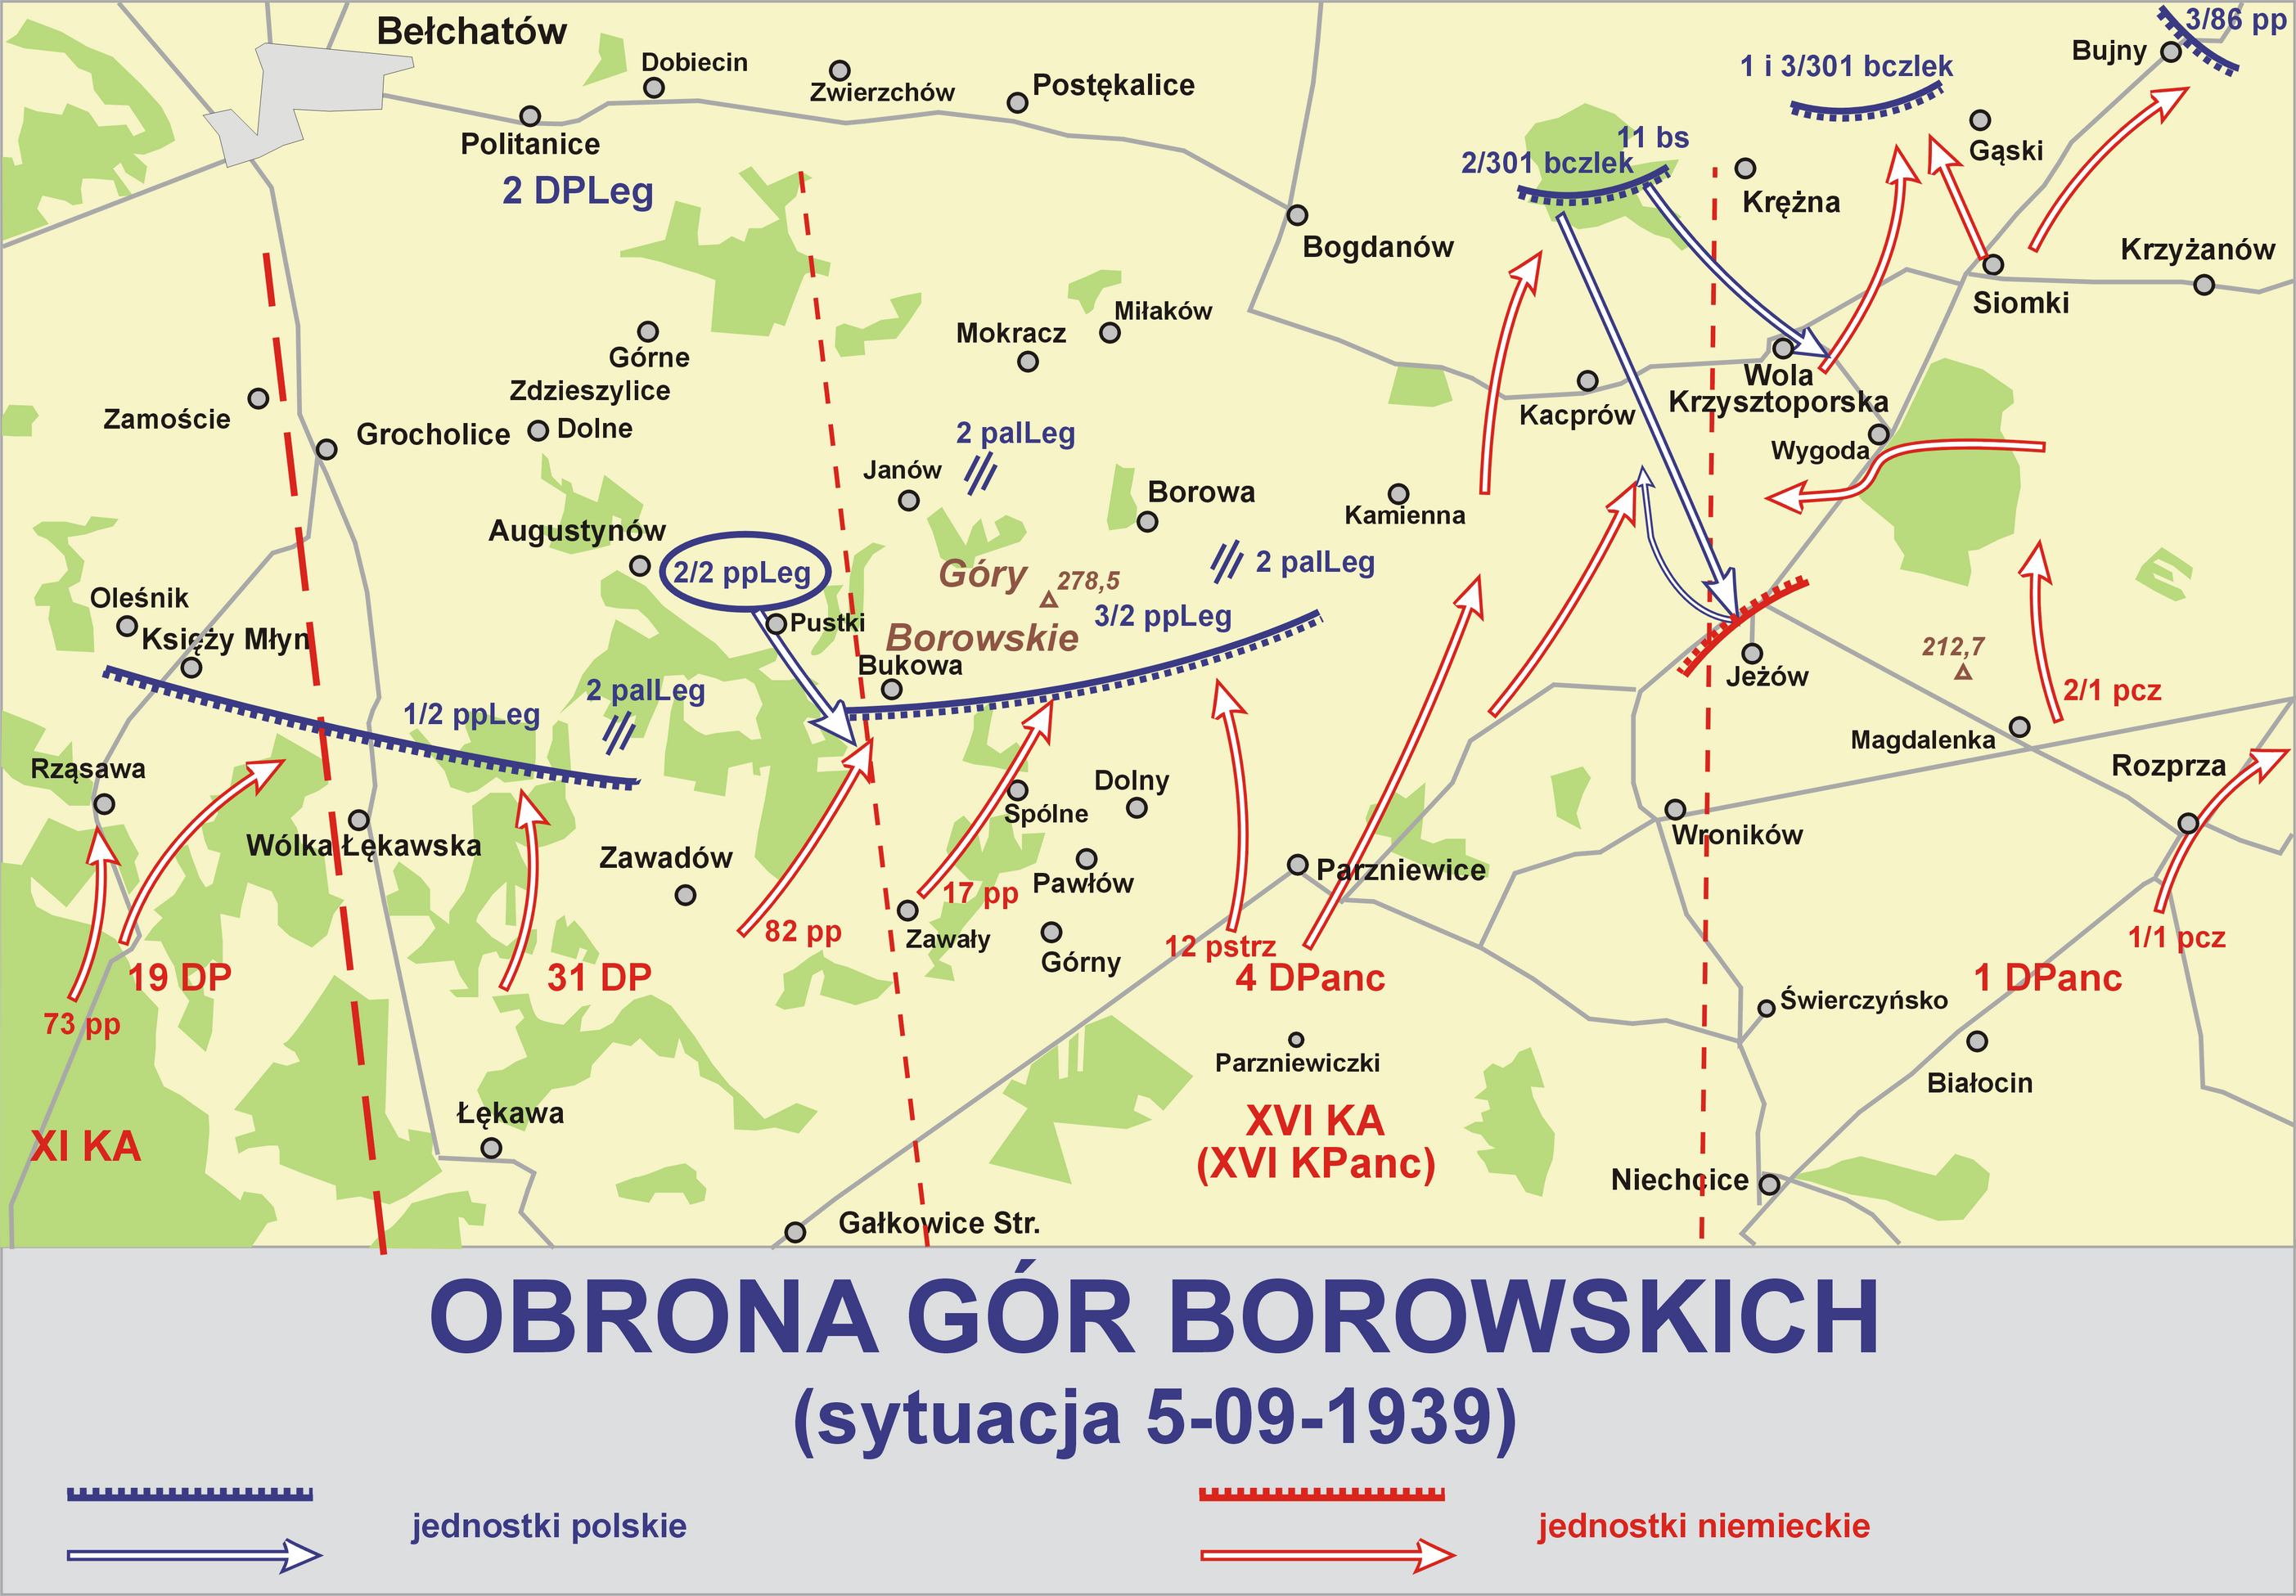 Poland 1939 kia german officers page 76 axis history forum map borowskie hills sciox Choice Image